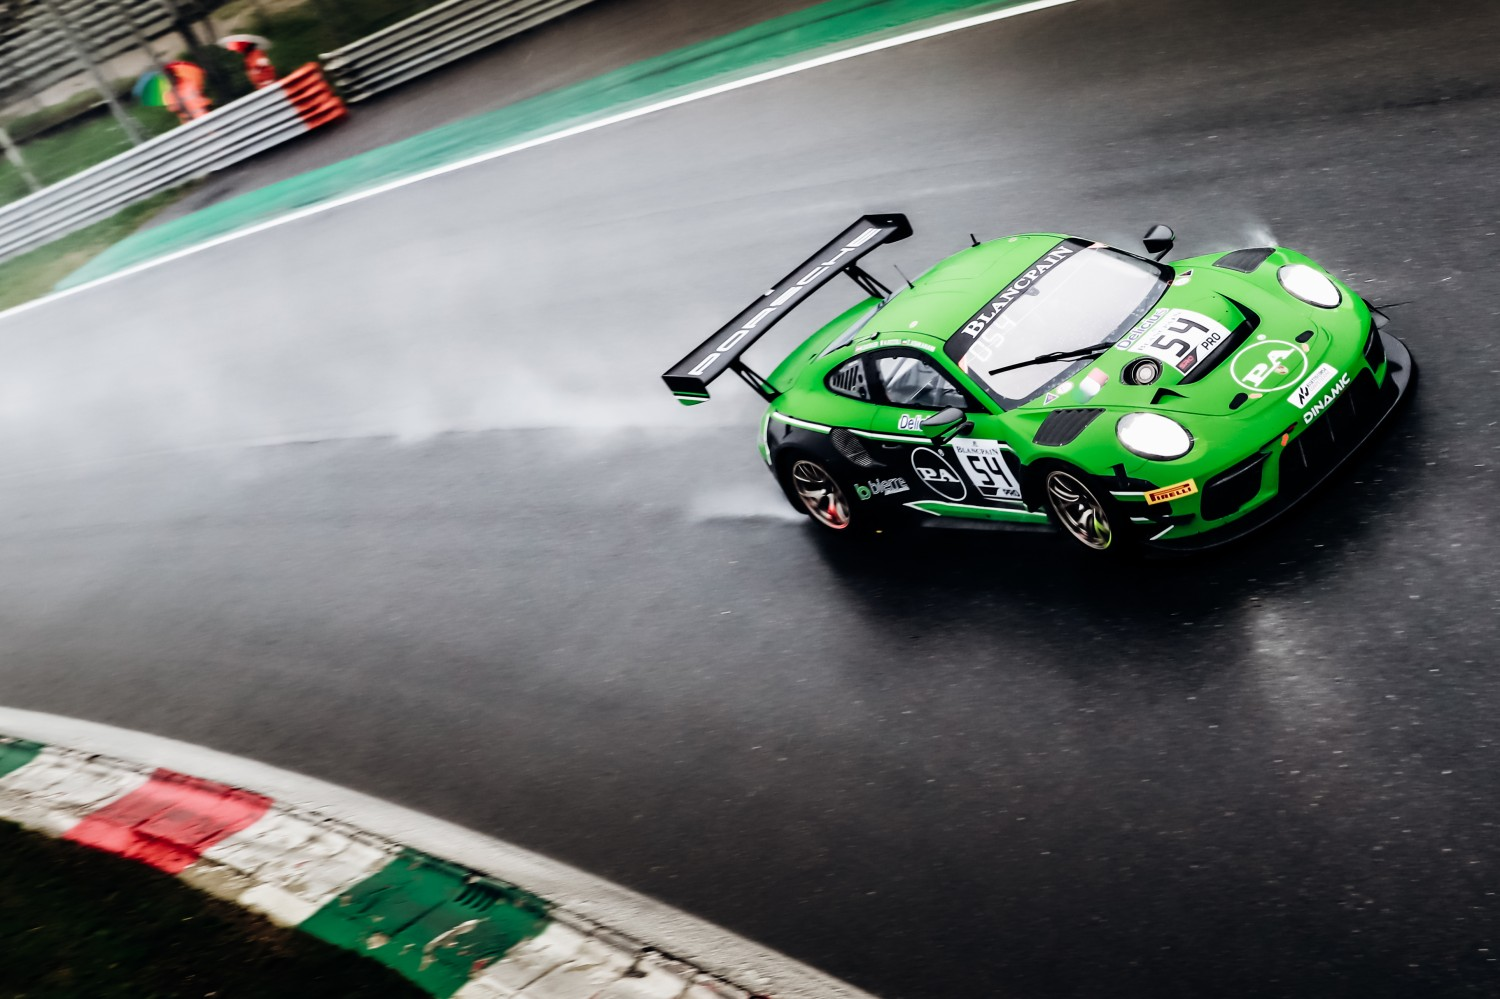 Dinamic Motorsport Porsche takes emotional Blancpain GT Series victory in dramatic 2019 season-opener at Monza